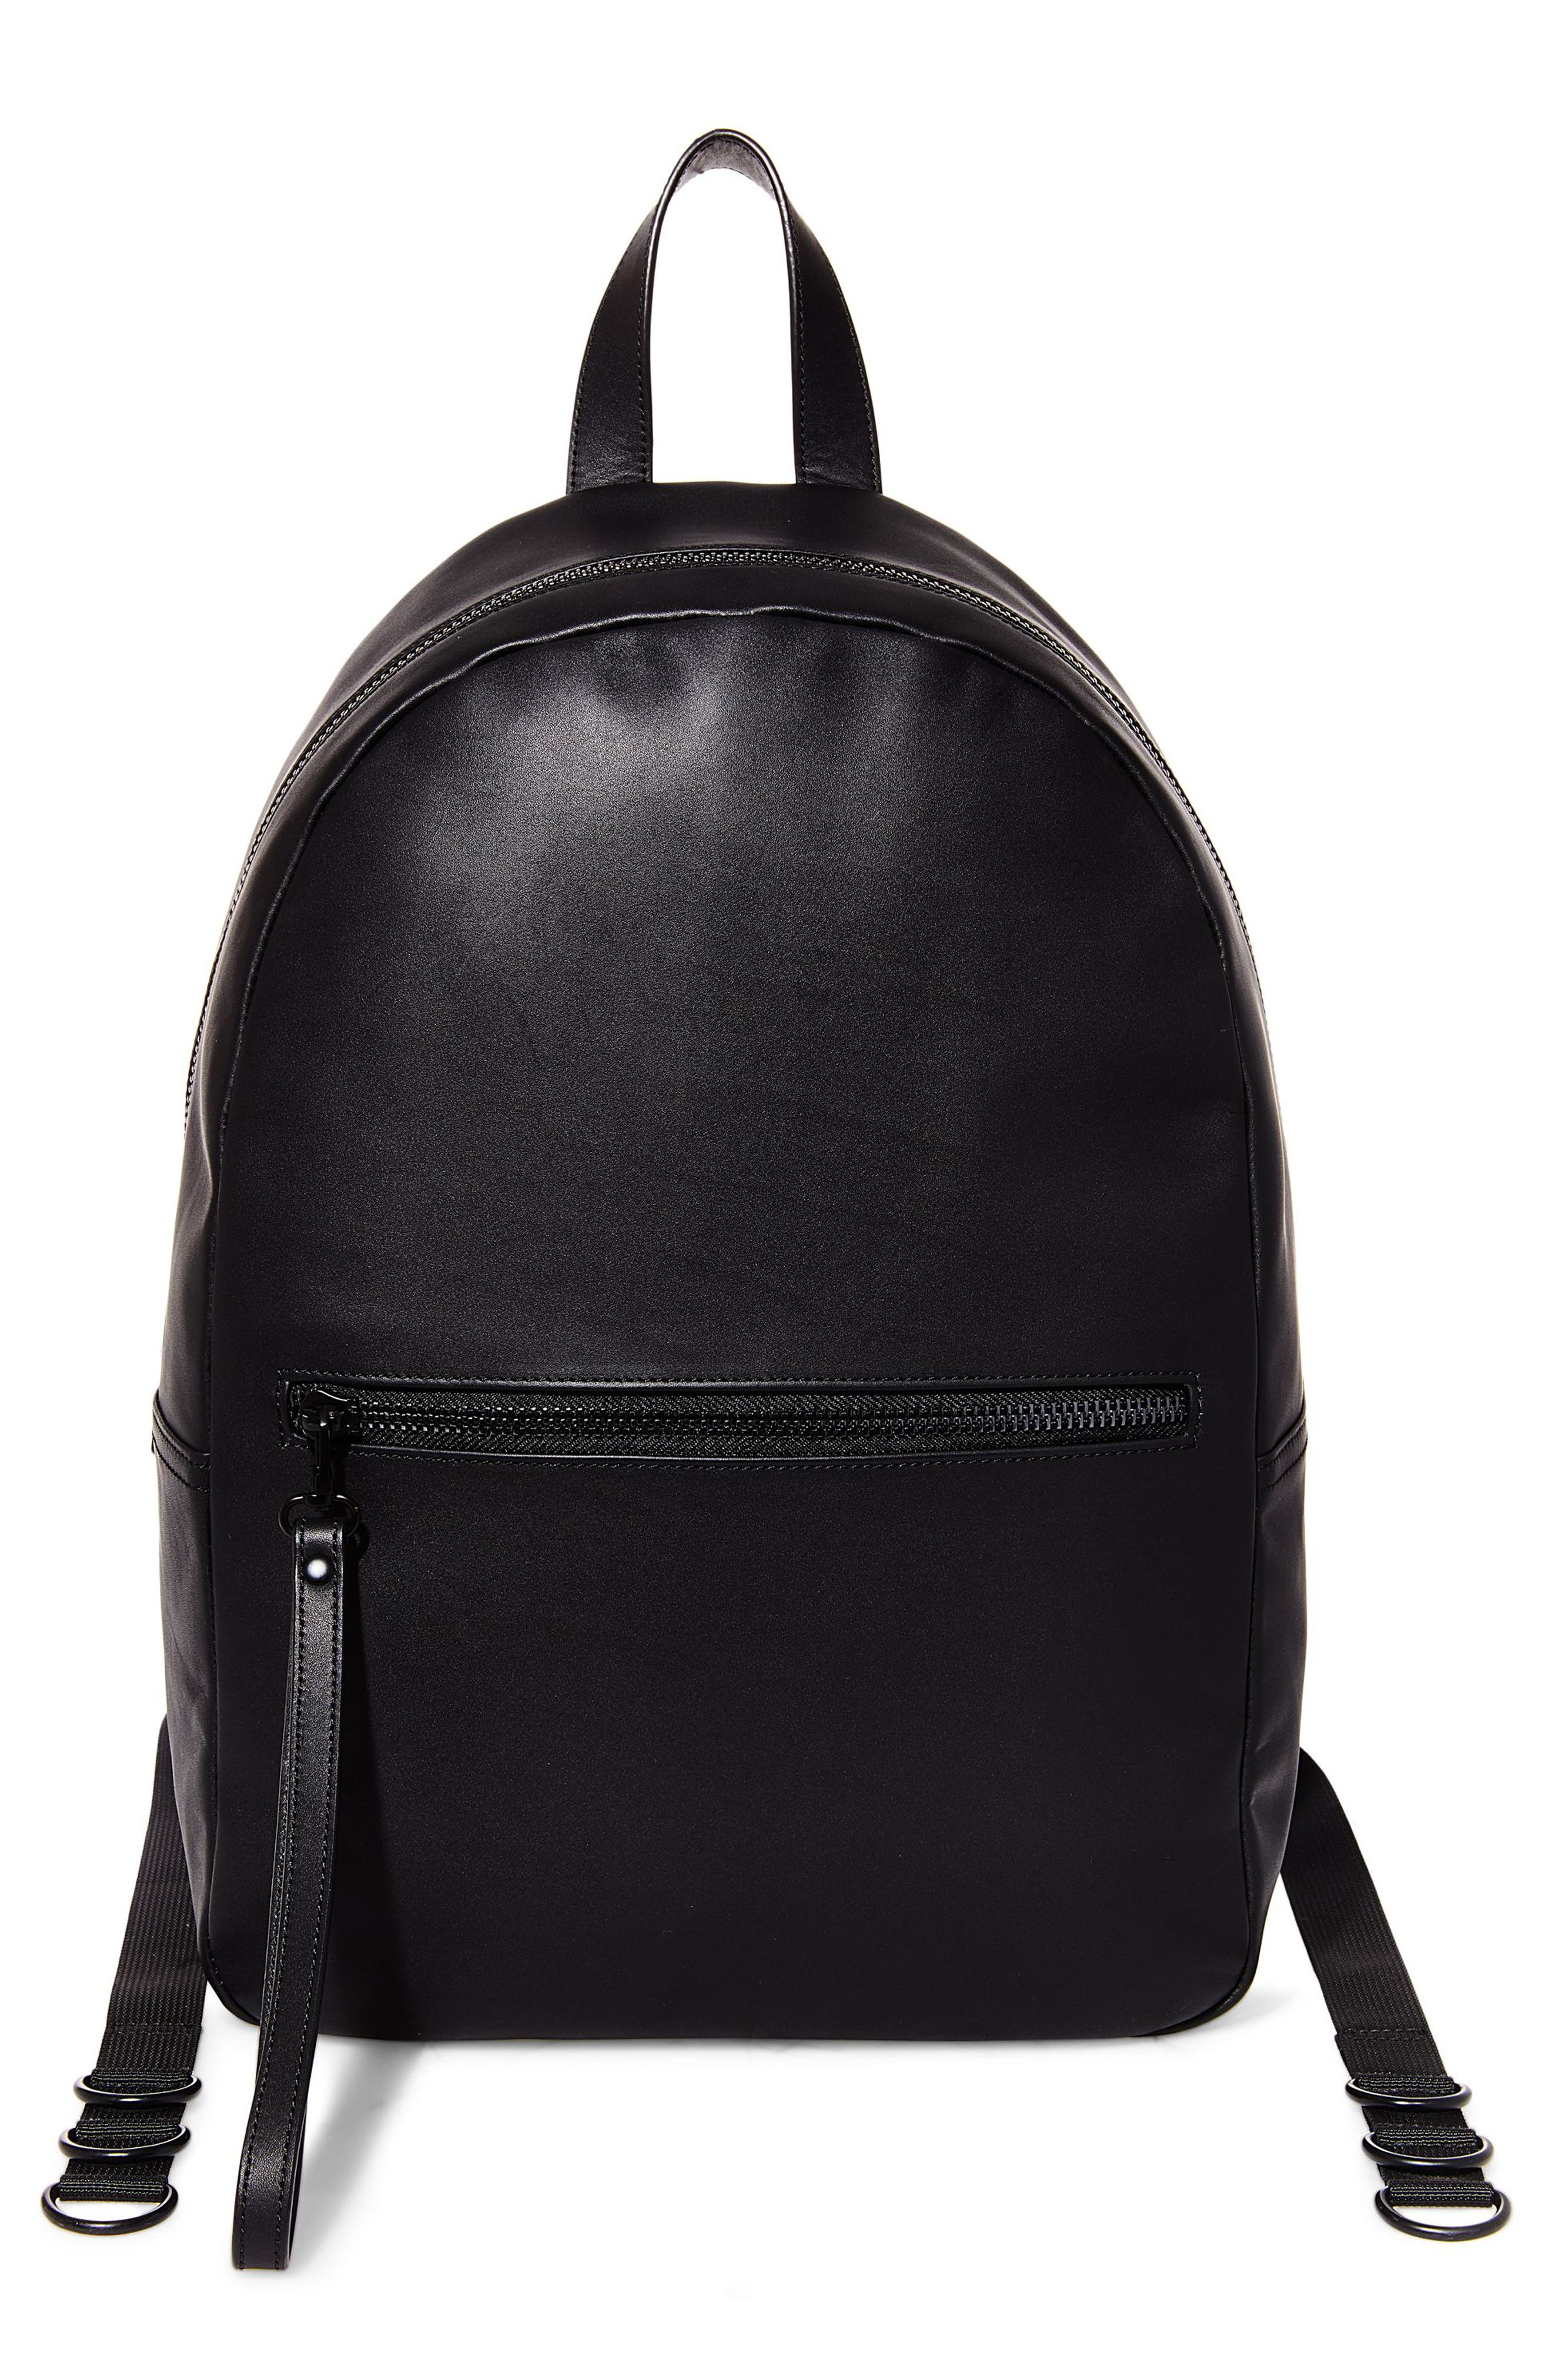 GQ x Steve Madden Leather Backpack,                         Main,                         color, Black